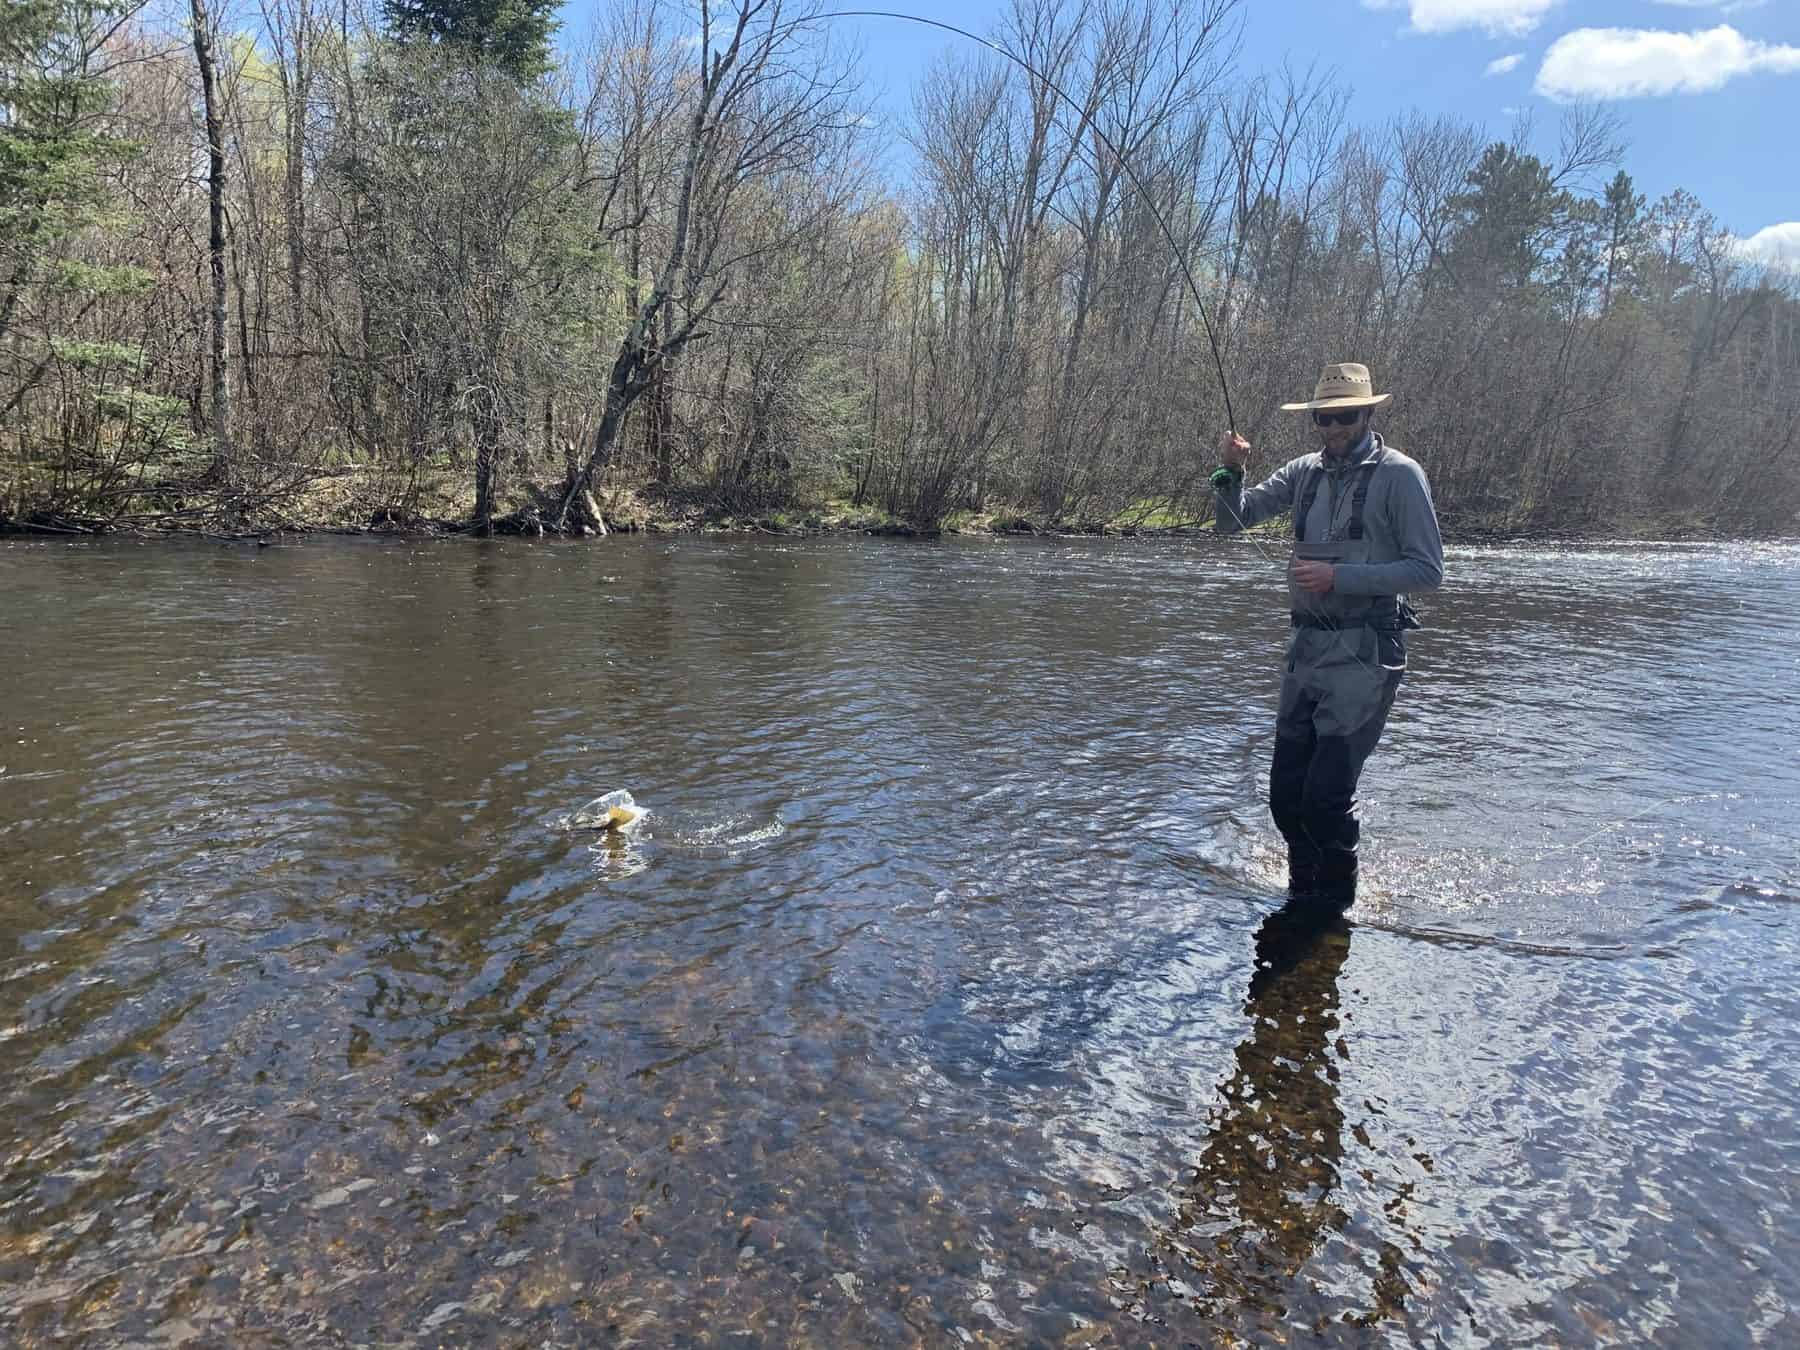 Stu at work on the Namekagon River